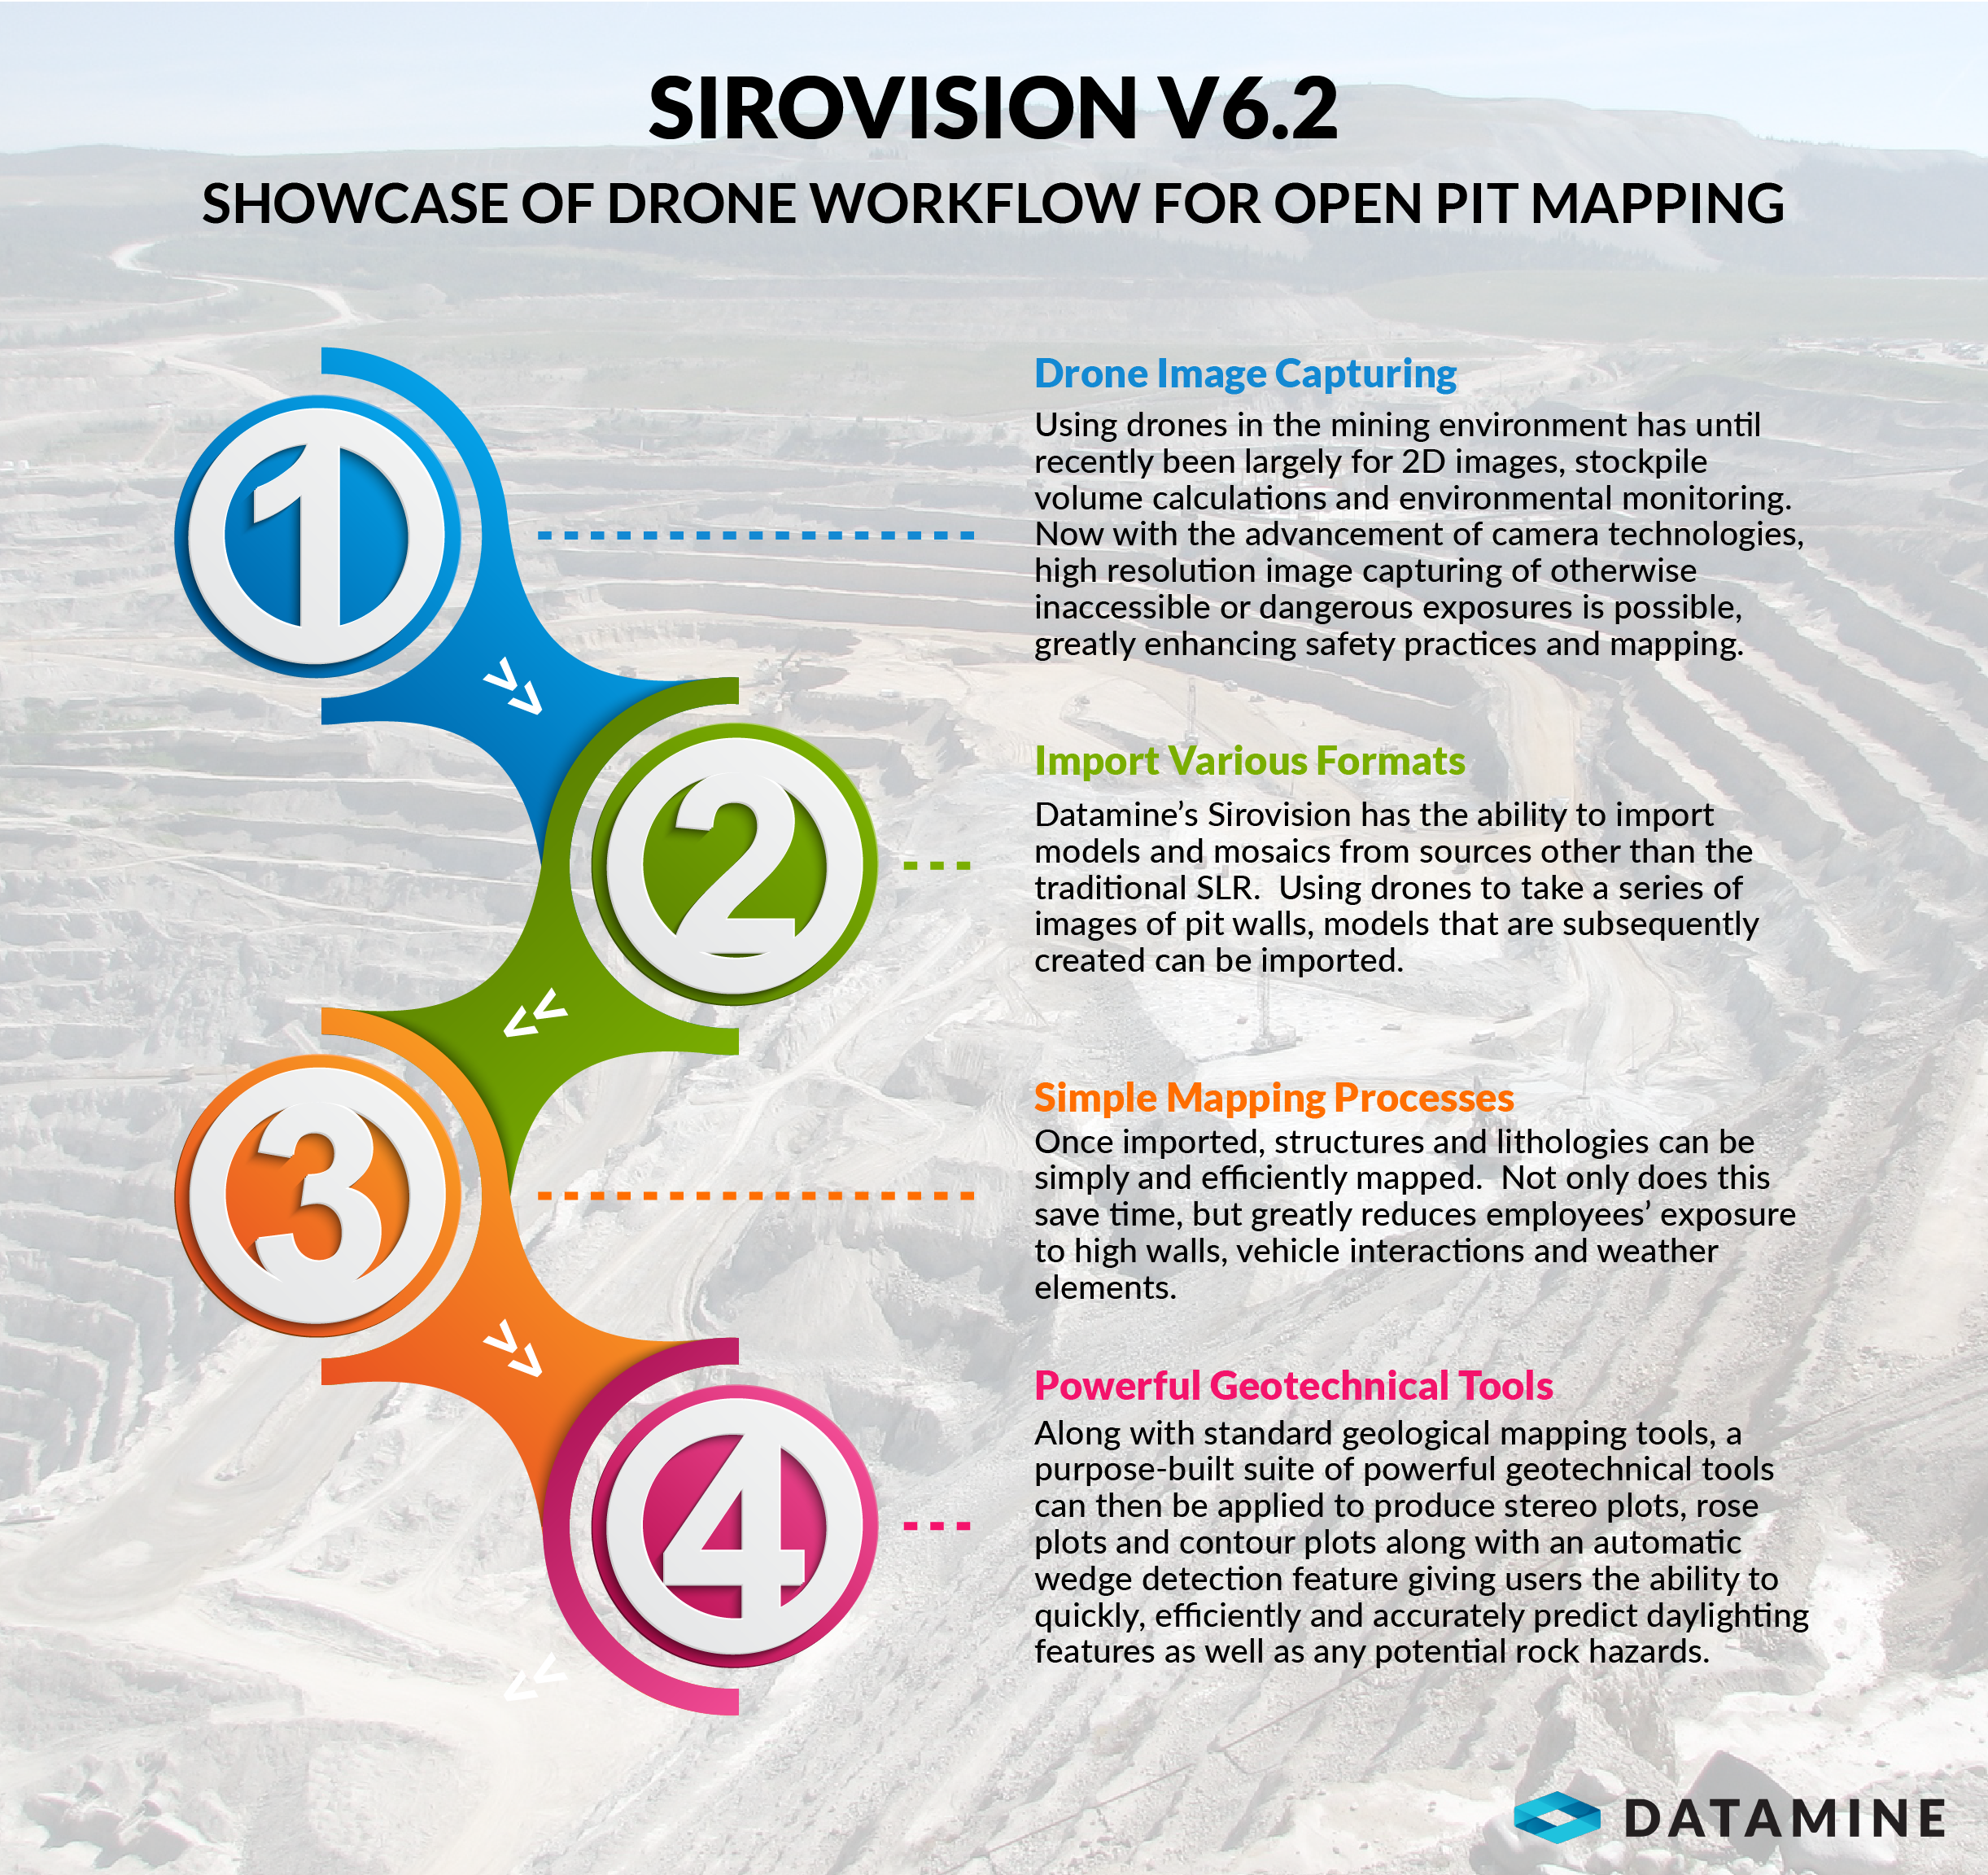 Sirovision V6 2 Showcase of Drone Workflow for Open Pit